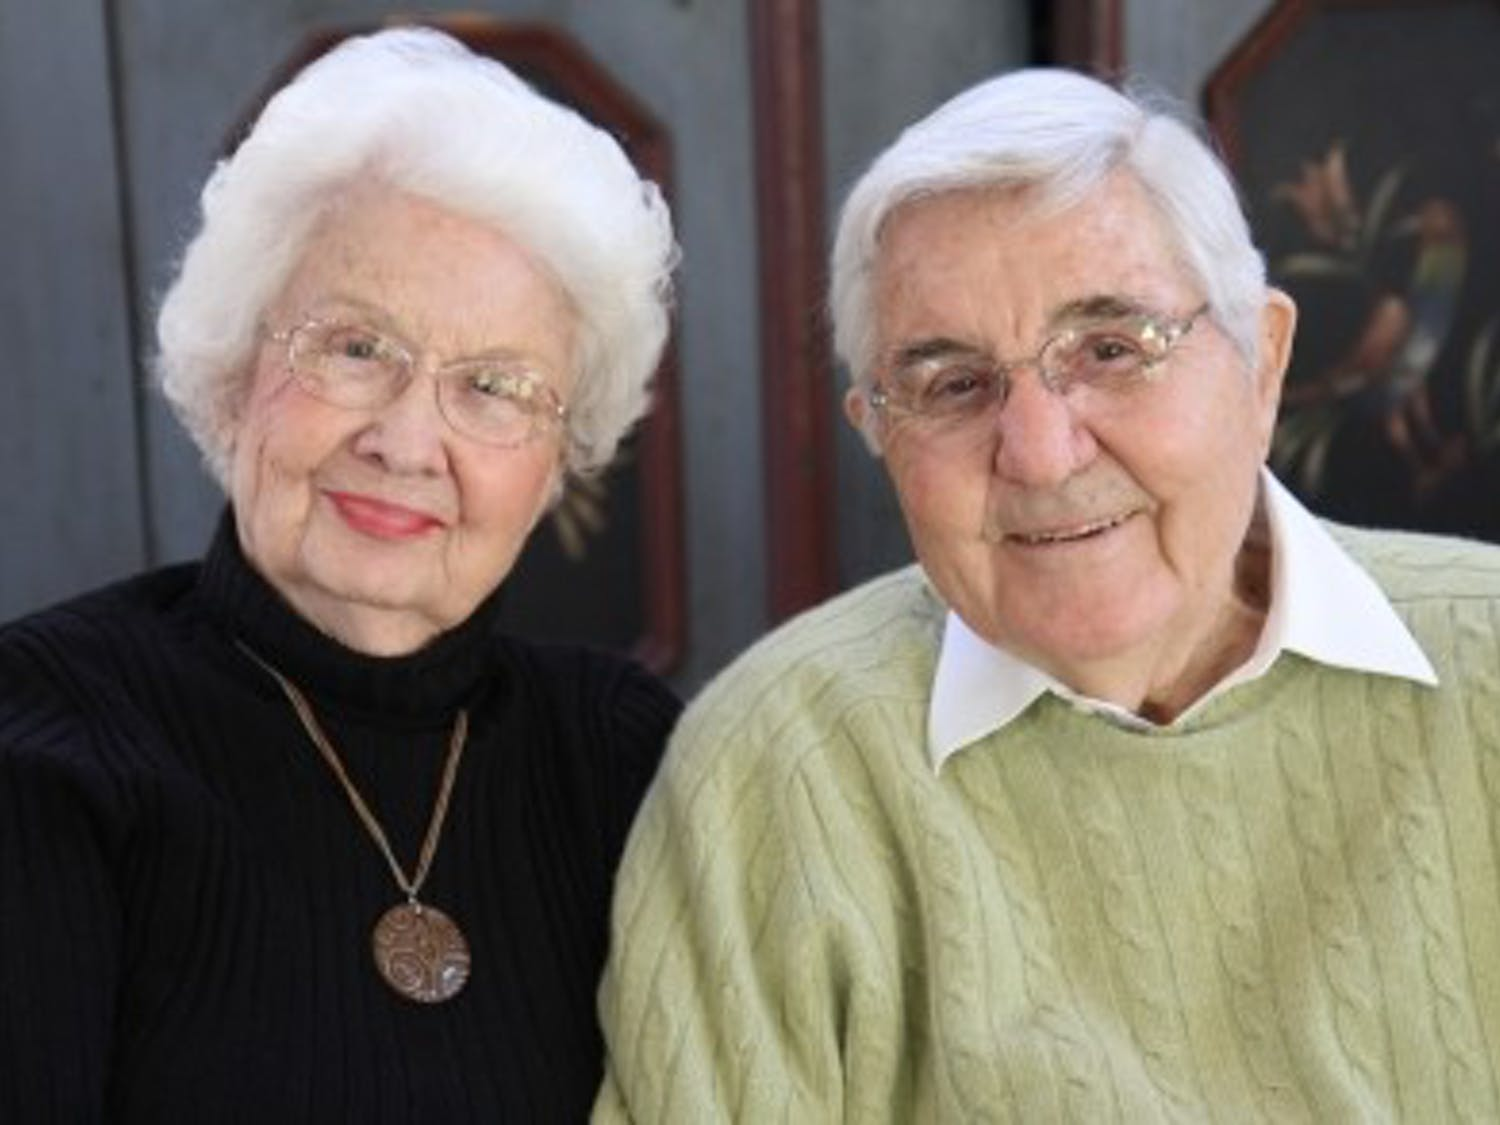 Bill Friday has died. He is pictured here with his wife, Ida, in the spring of 2010.